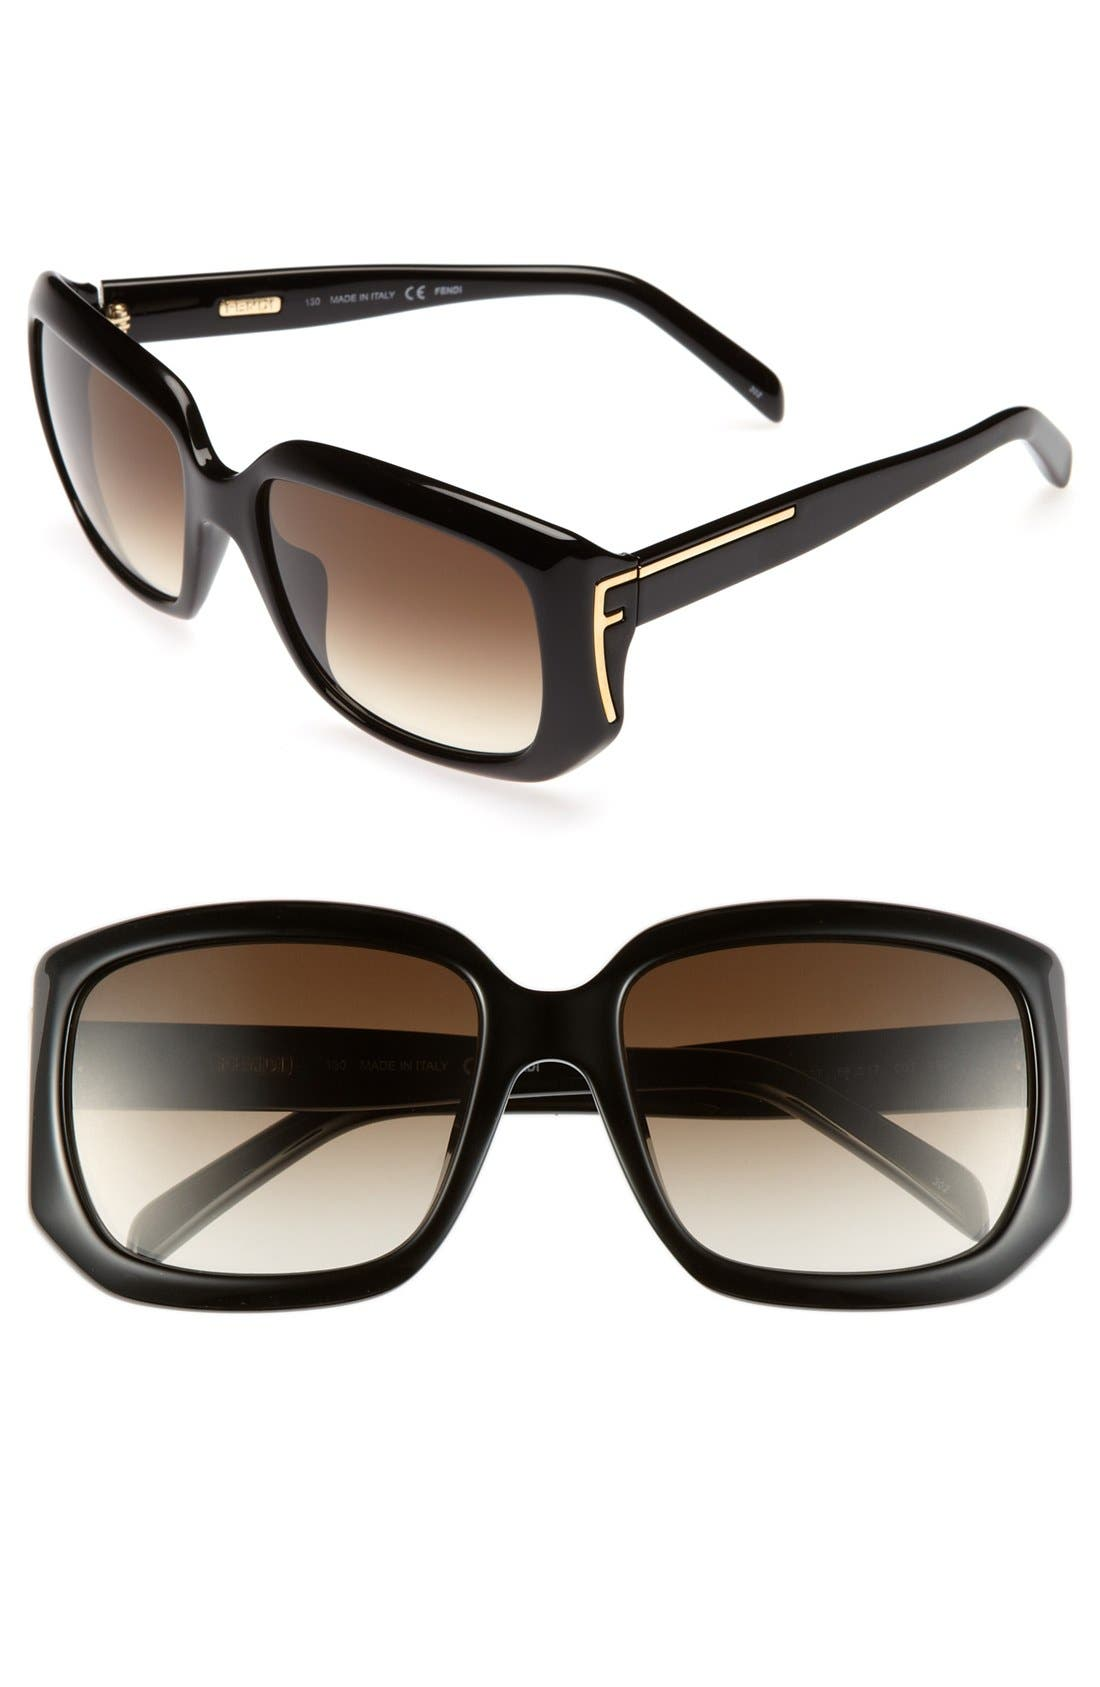 Alternate Image 1 Selected - Fendi 56mm Oversized Sunglasses